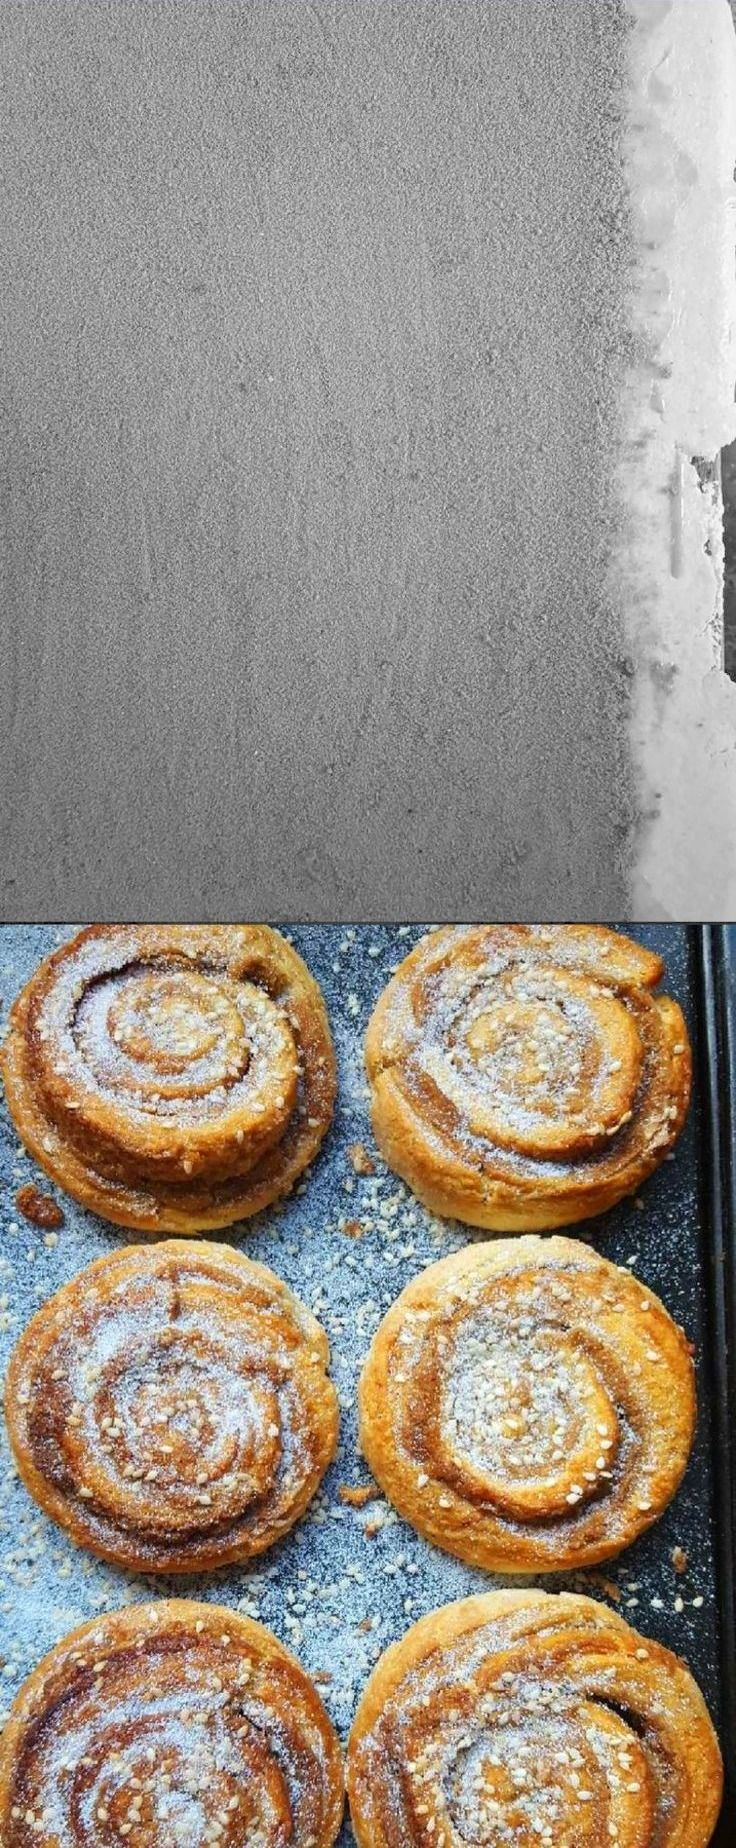 Before and After: Tahini-Cardamom Buns by Violet Cakes London #cardamombuns Before and After: Tahini-Cardamom Buns by Violet Cakes London #cardamombuns Before and After: Tahini-Cardamom Buns by Violet Cakes London #cardamombuns Before and After: Tahini-Cardamom Buns by Violet Cakes London #cardamombuns Before and After: Tahini-Cardamom Buns by Violet Cakes London #cardamombuns Before and After: Tahini-Cardamom Buns by Violet Cakes London #cardamombuns Before and After: Tahini-Cardamom Buns by Vi #cardamombuns